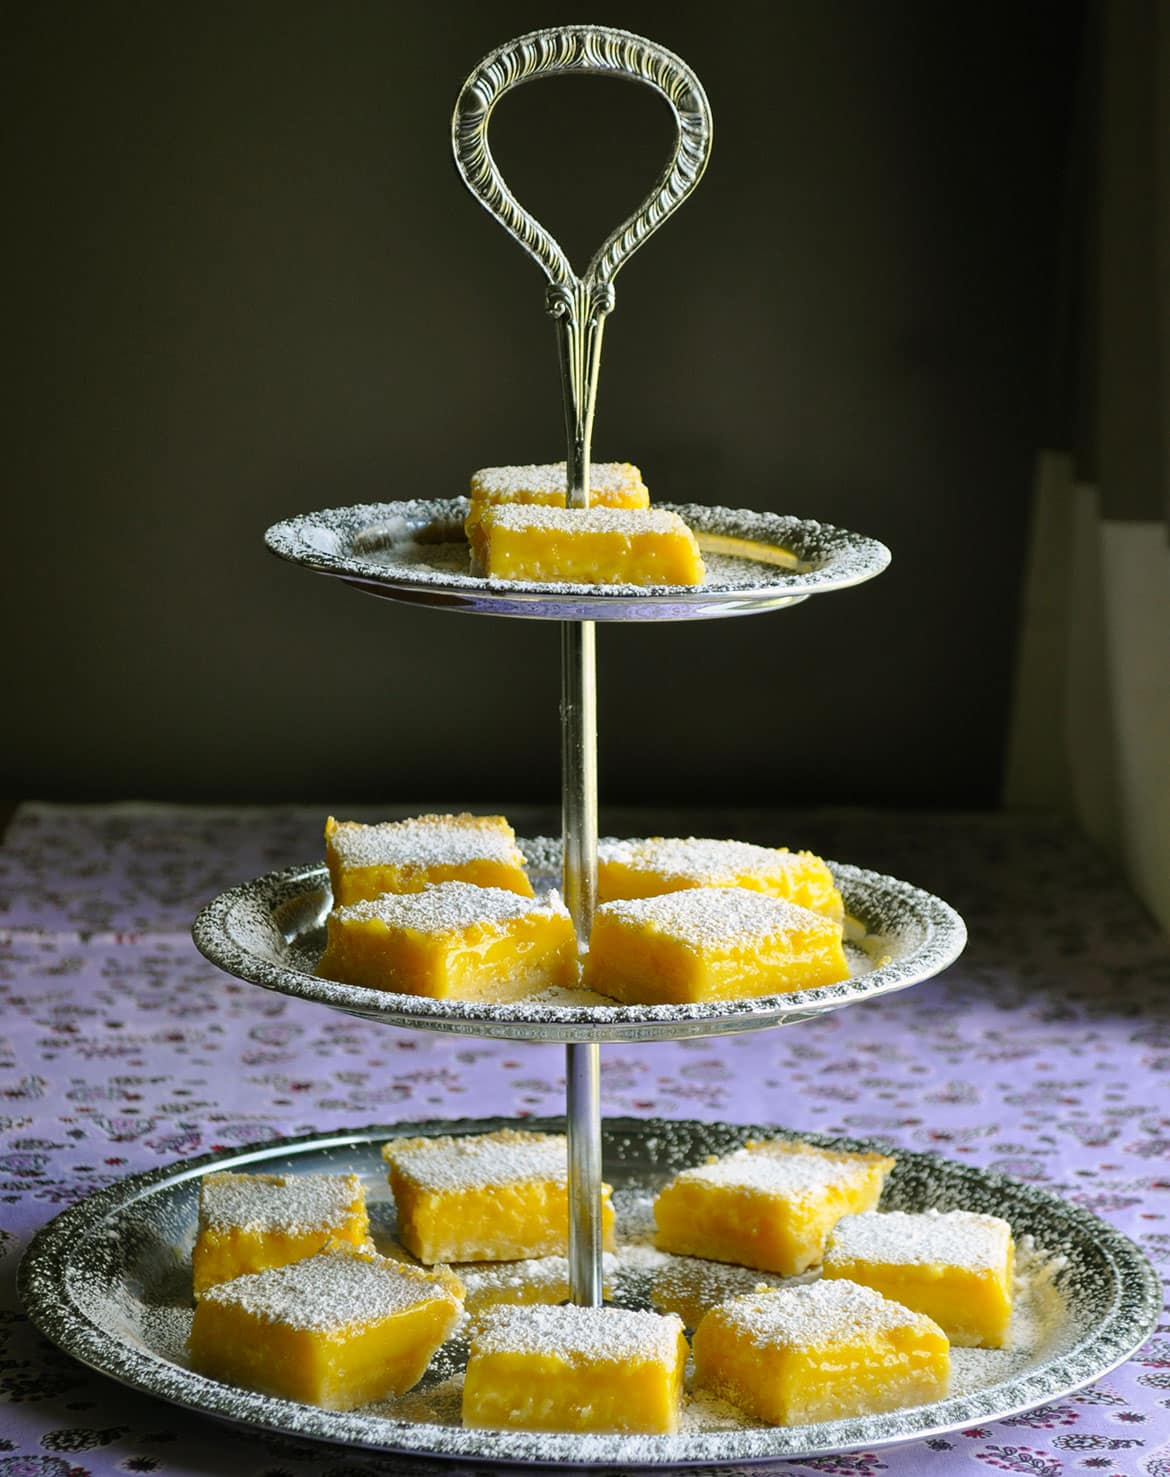 A three tiered dessert tray holding lemon bars.